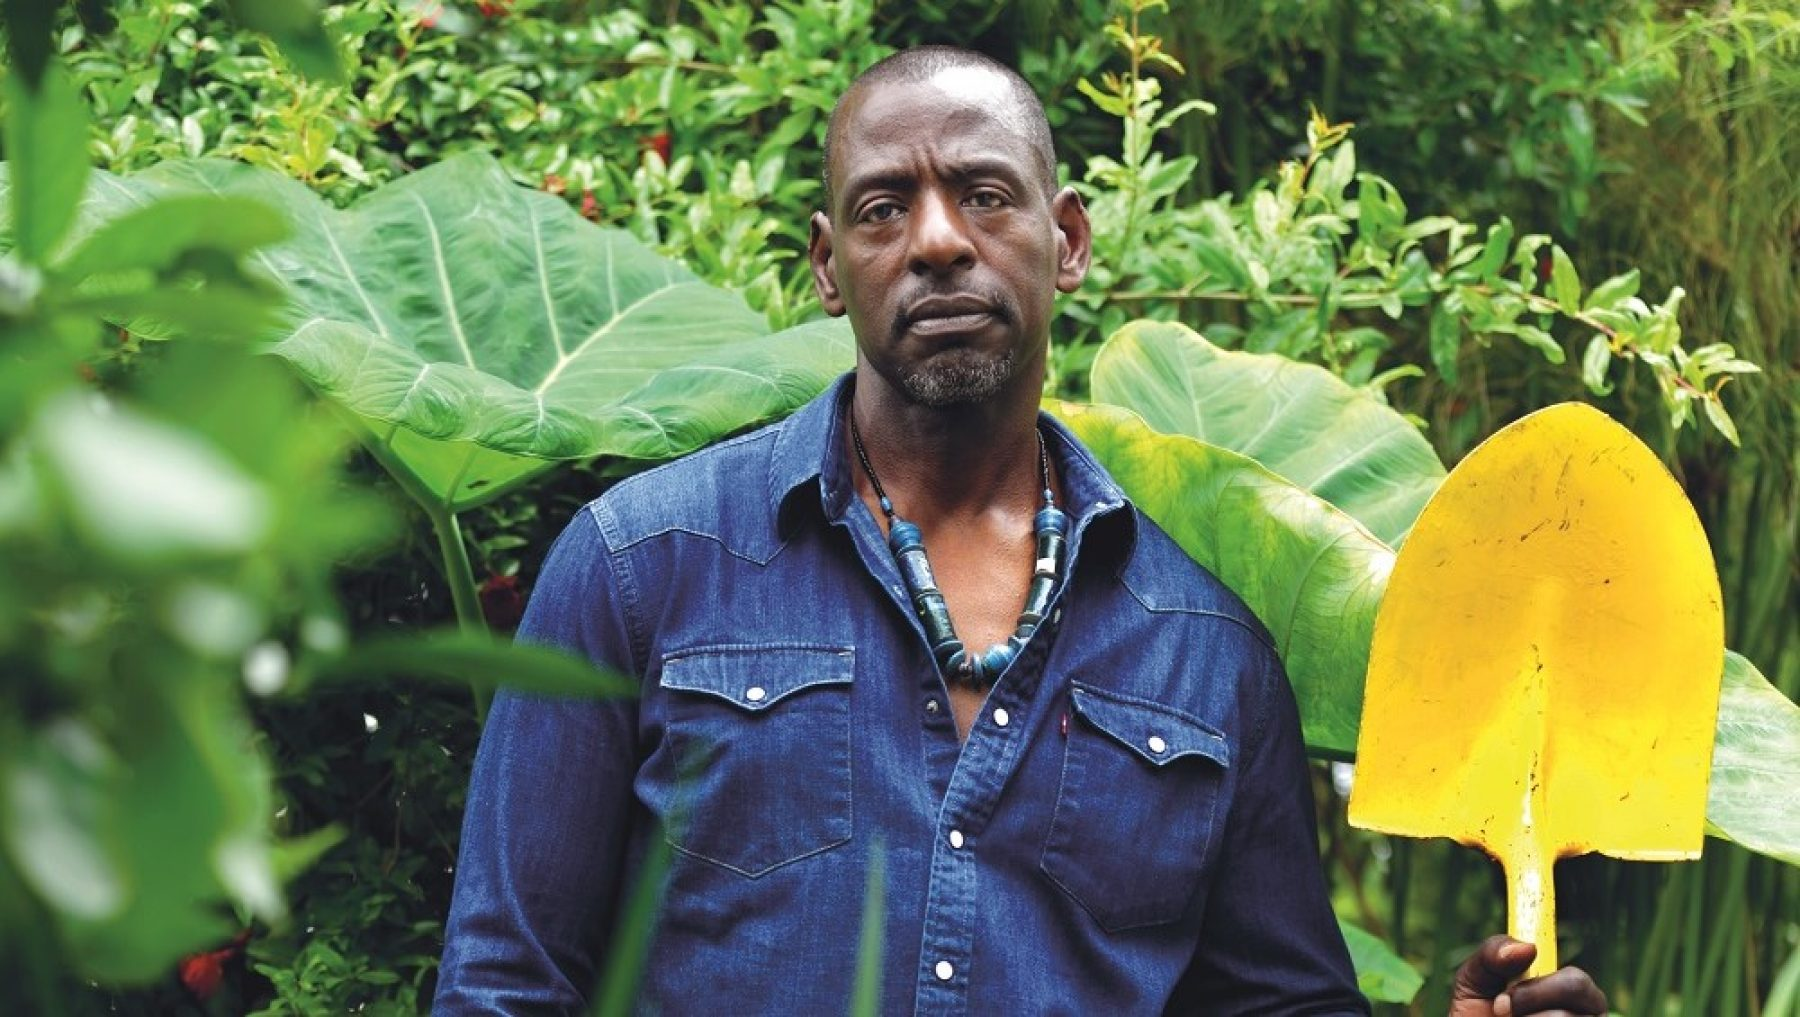 Image for The 'gangsta gardener' who believes masculinity is about being a conscious citizen